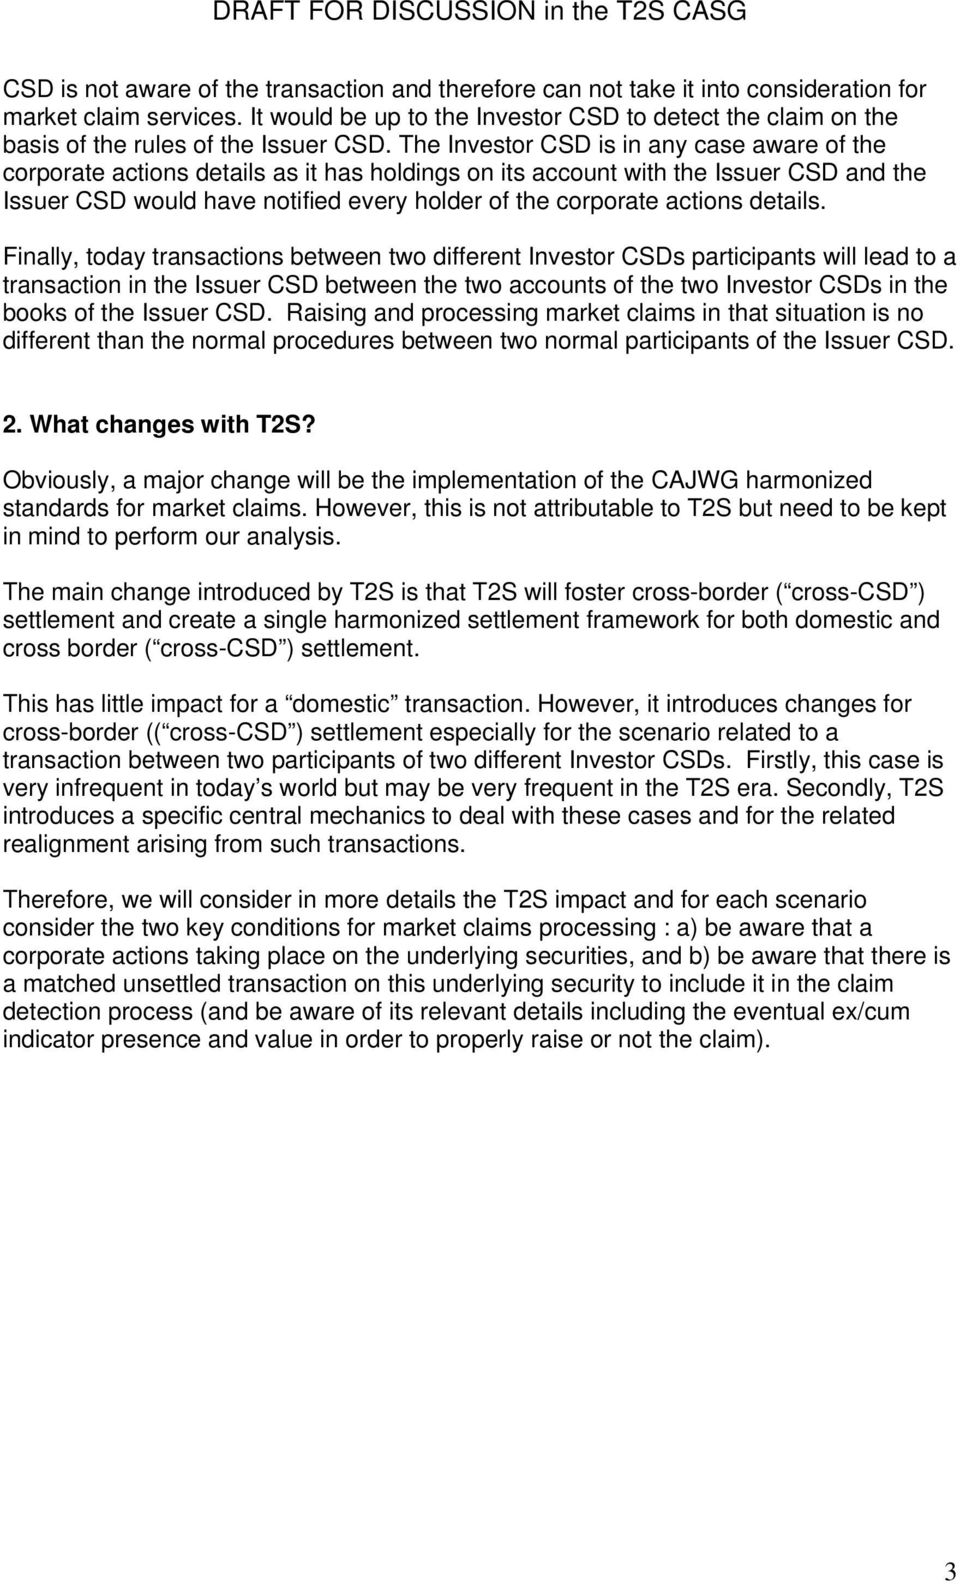 The Investor CSD is in any case aware of the corporate actions details as it has holdings on its account with the Issuer CSD and the Issuer CSD would have notified every holder of the corporate